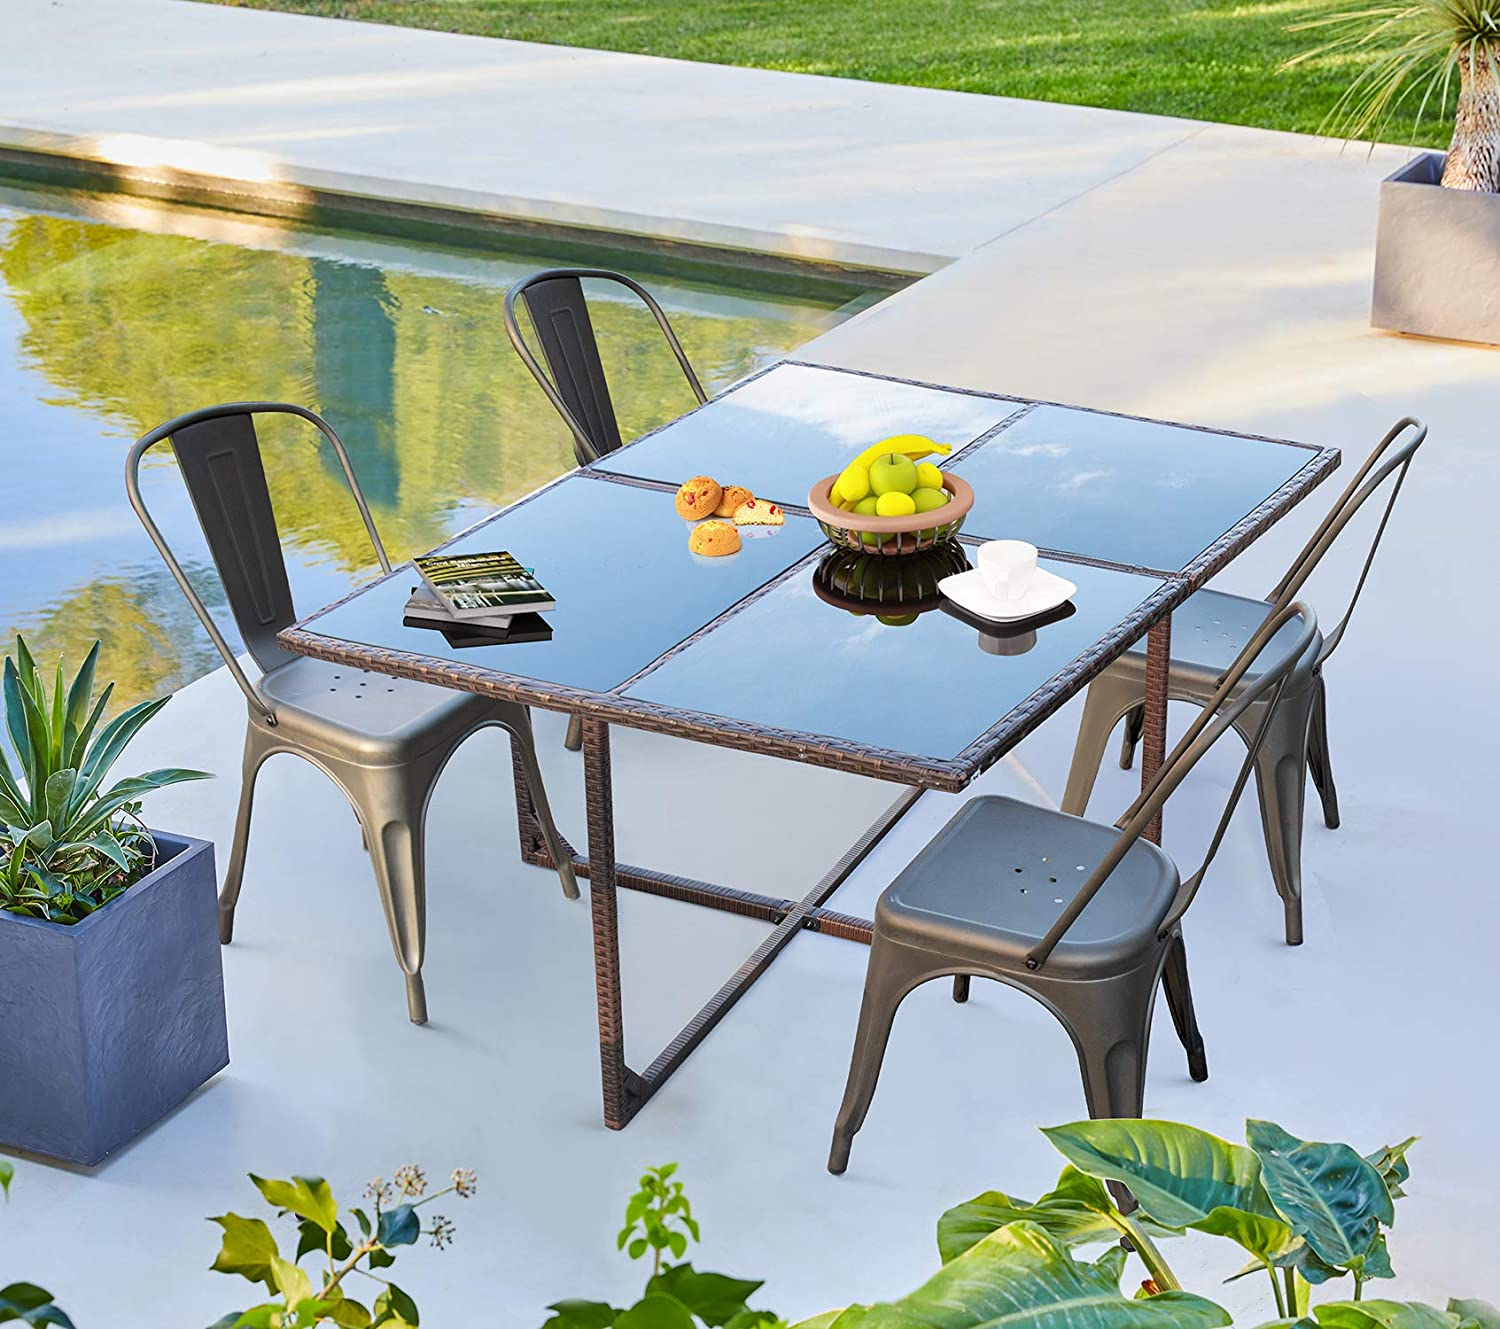 vineego 5 pieces patio dining sets outdoor dining table and metal dining chairs gun